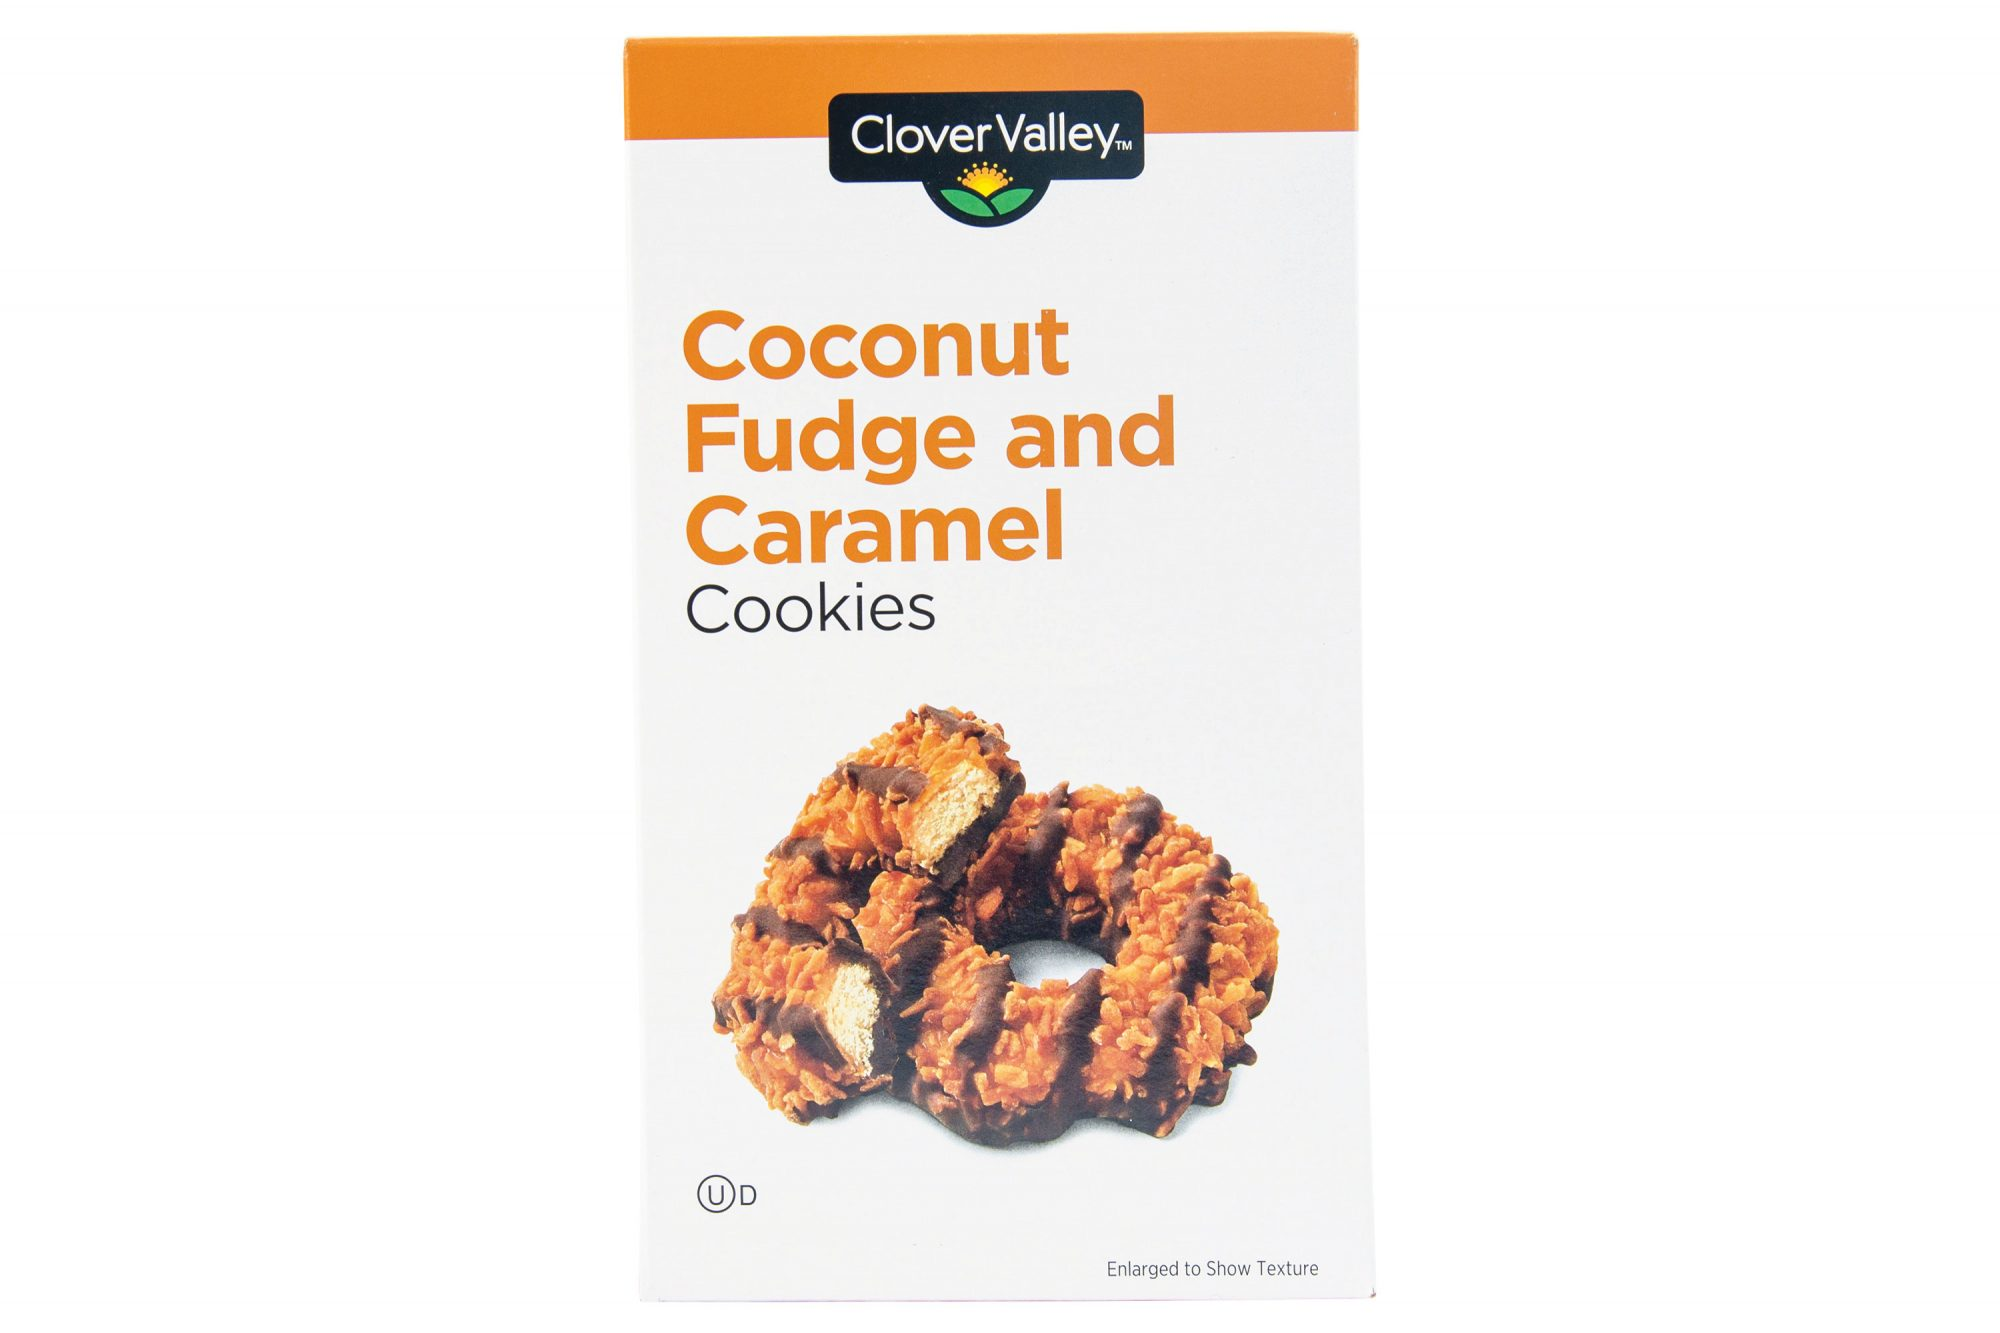 Clover Valley Coconut Fudge and Caramel Cookies